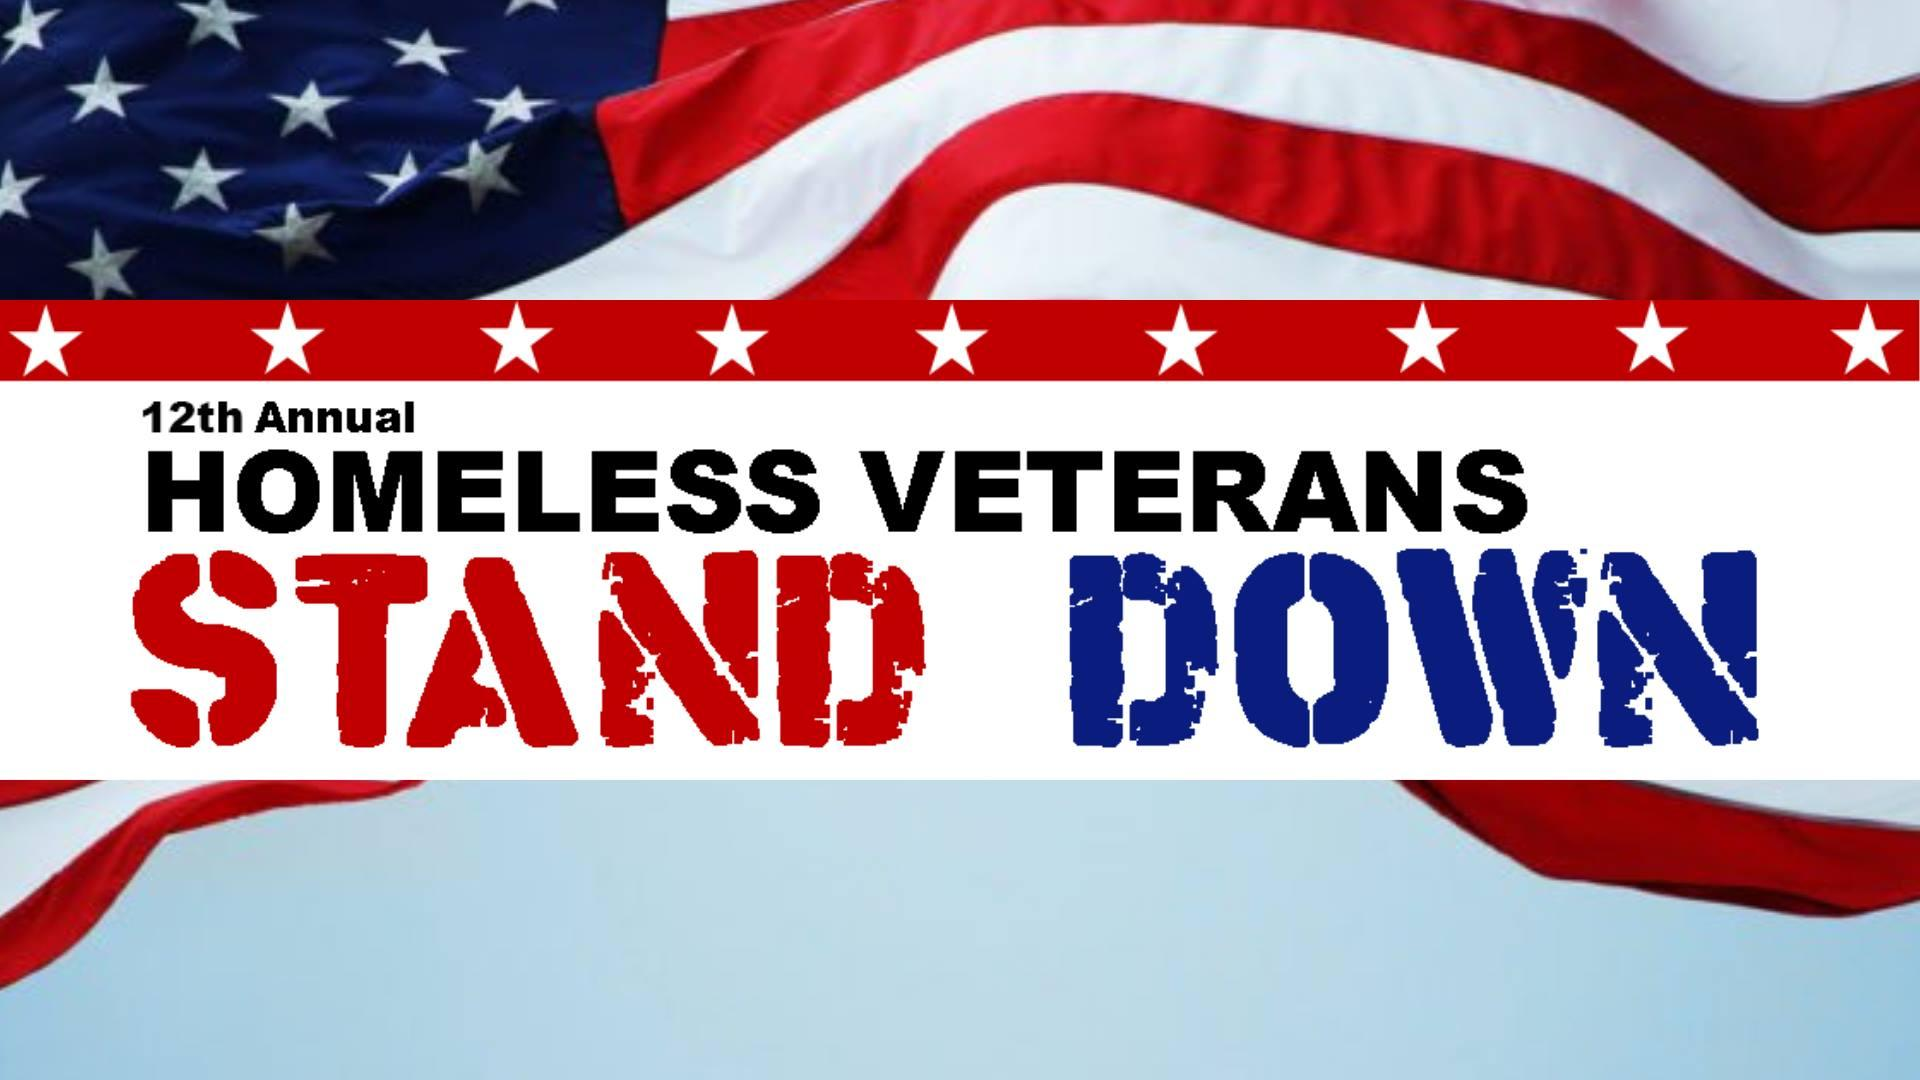 Annual Homeless Veterans Stand Down